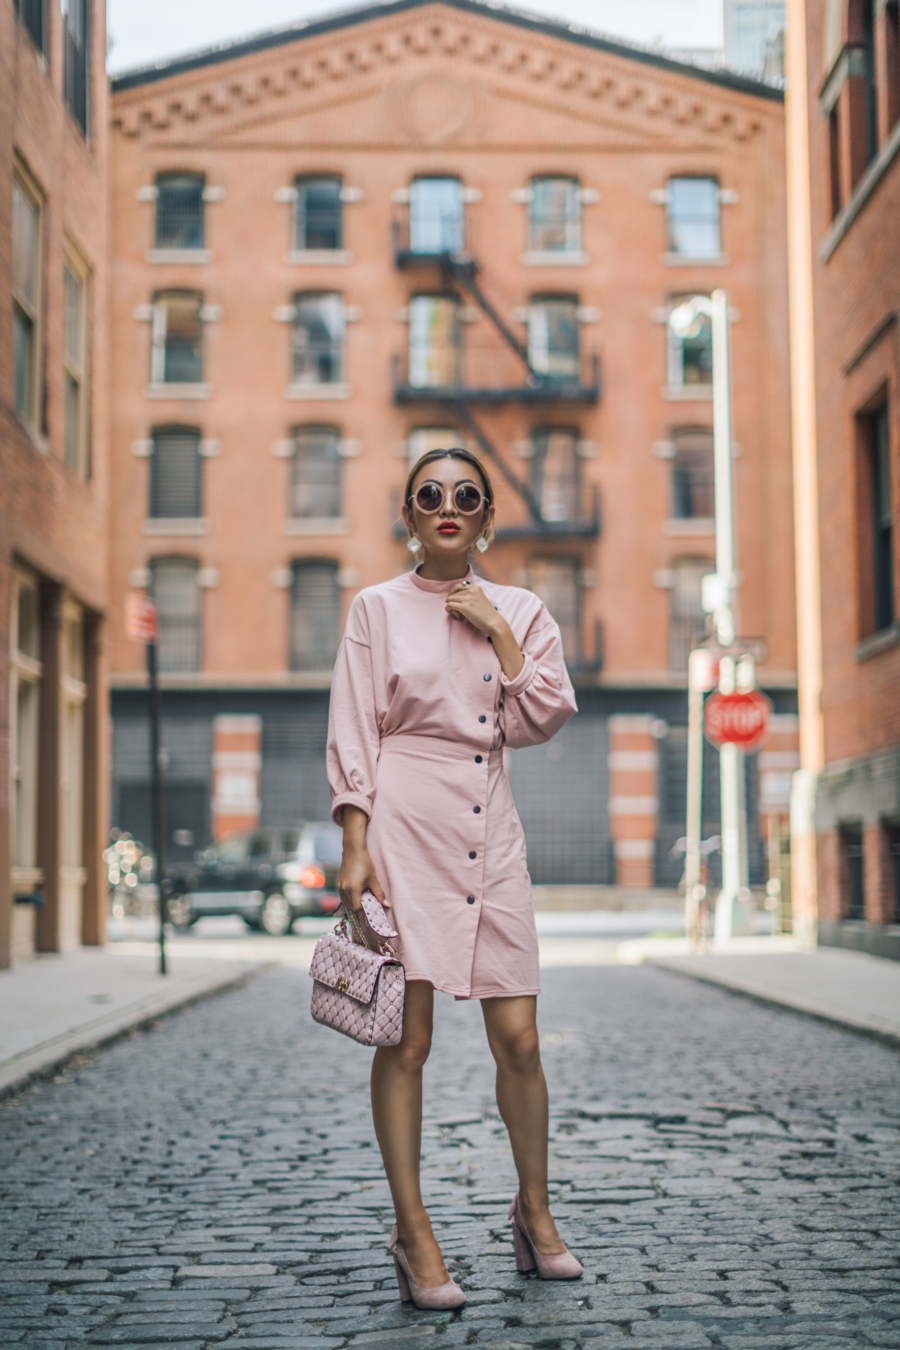 Stylish but Office Friendly Summer Outfit Ideas - button down dress, shirt dress, pink professional dress // Notjessfashion.com